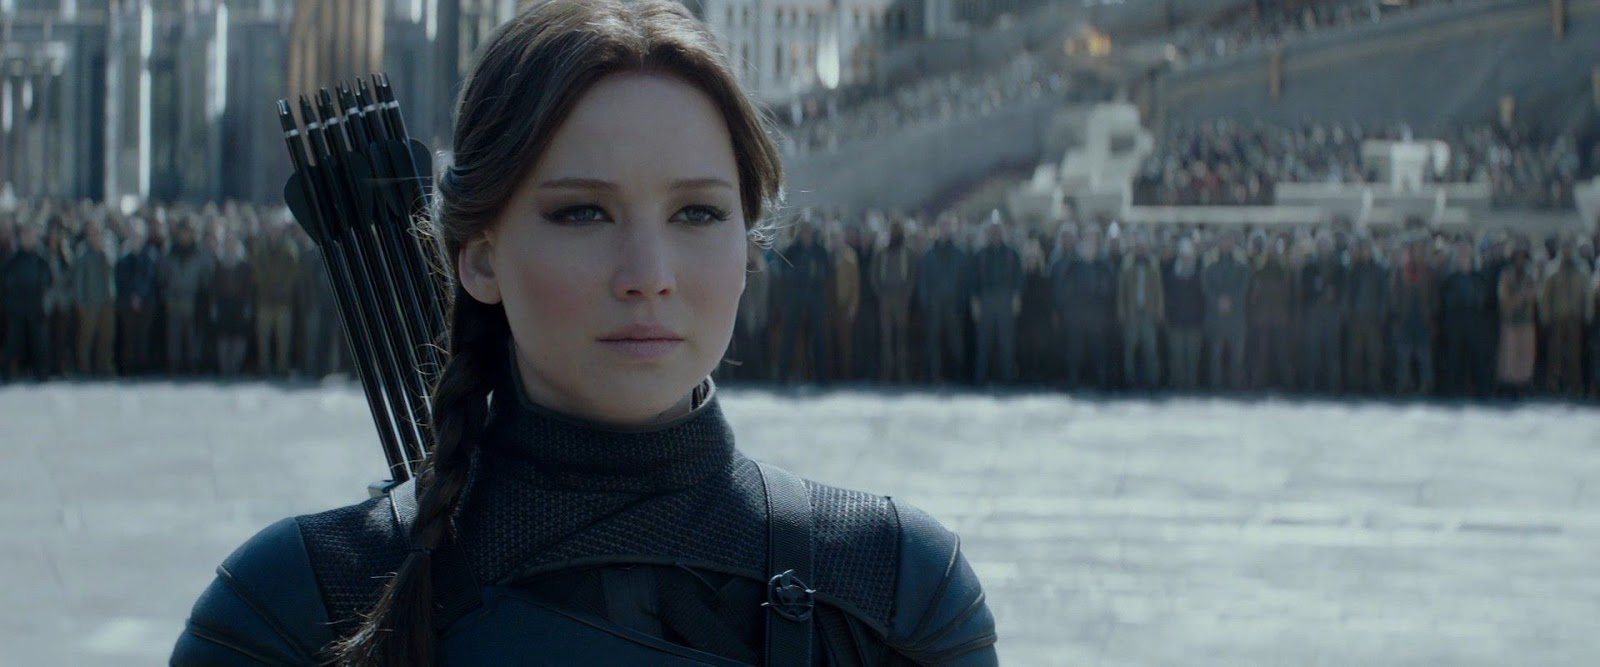 The Hunger Games: Mockingjay - Part 2 3